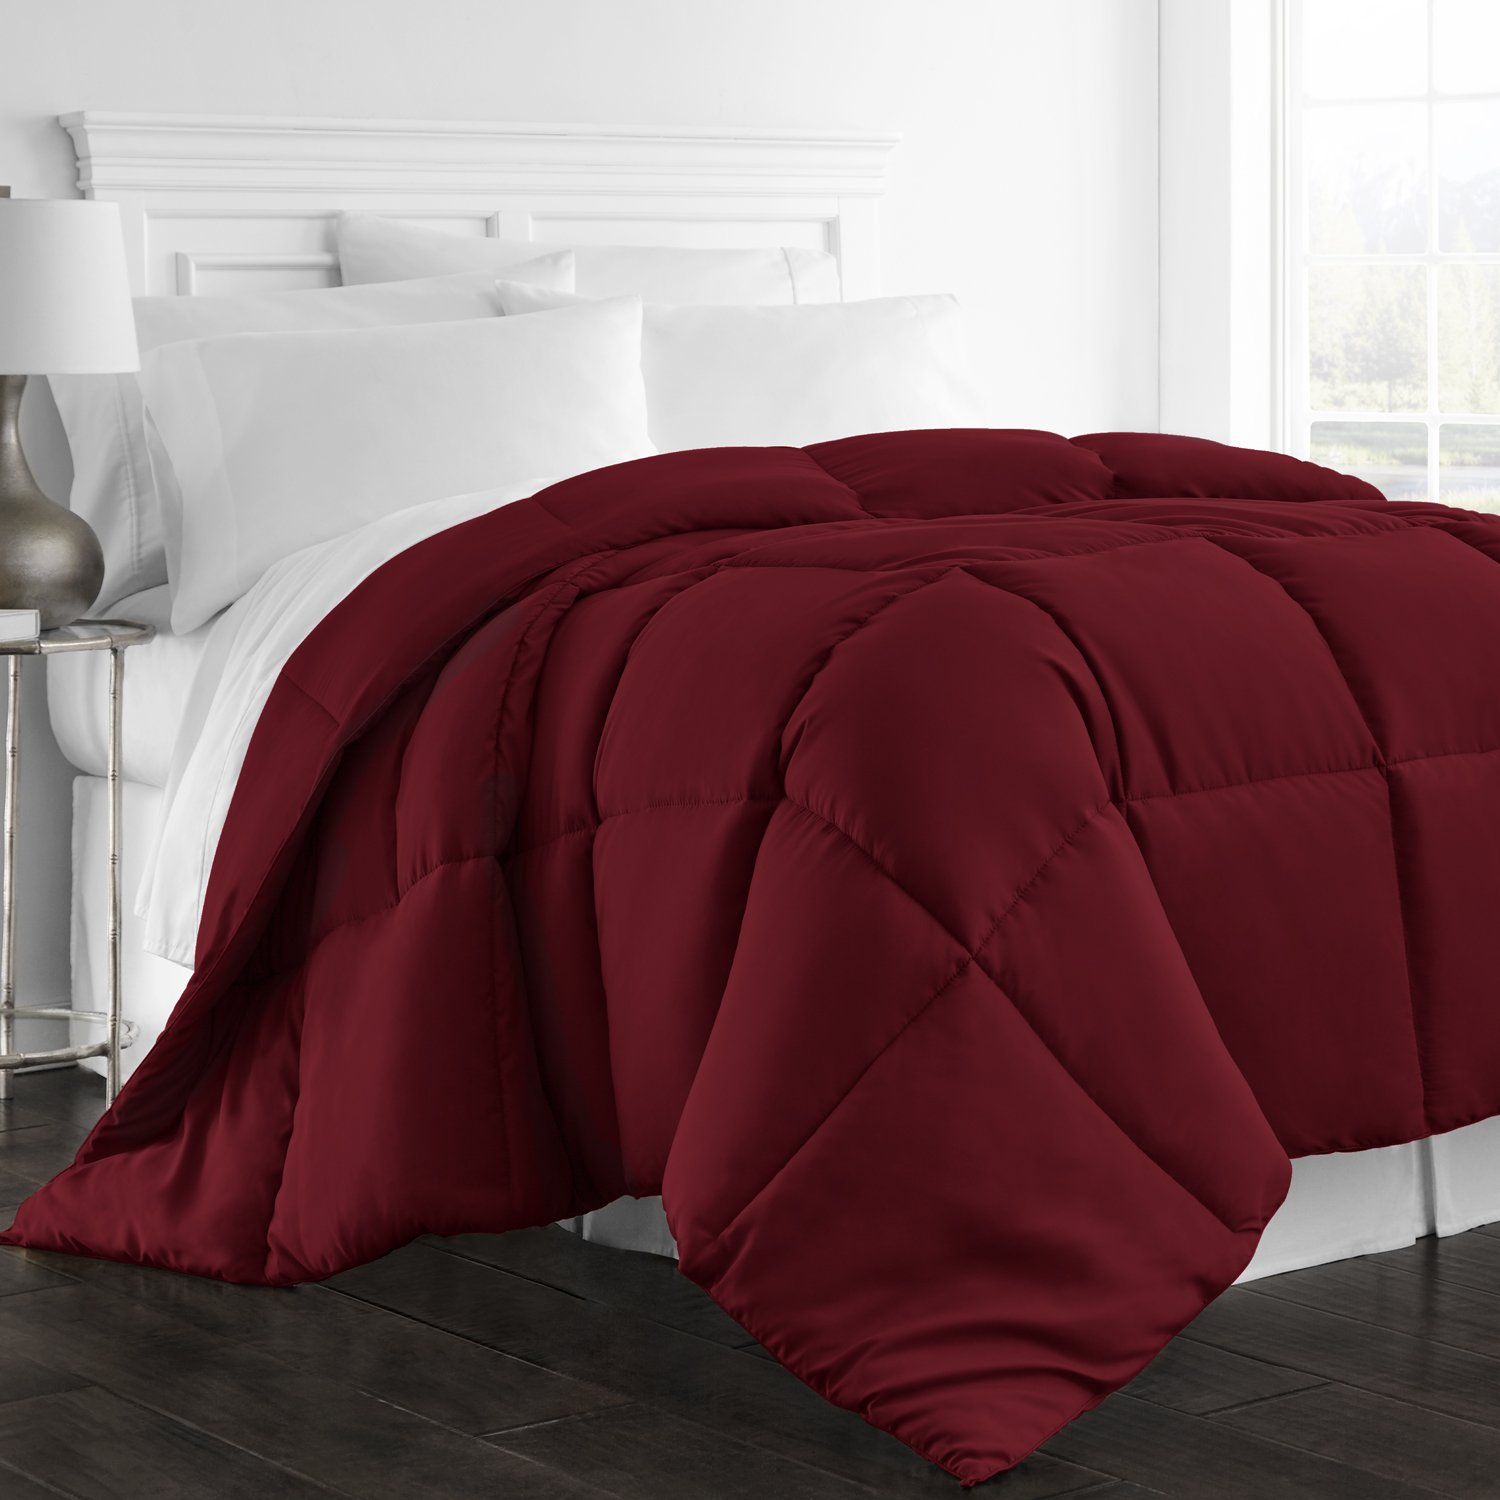 Microfiber Comforter – Best For All Season